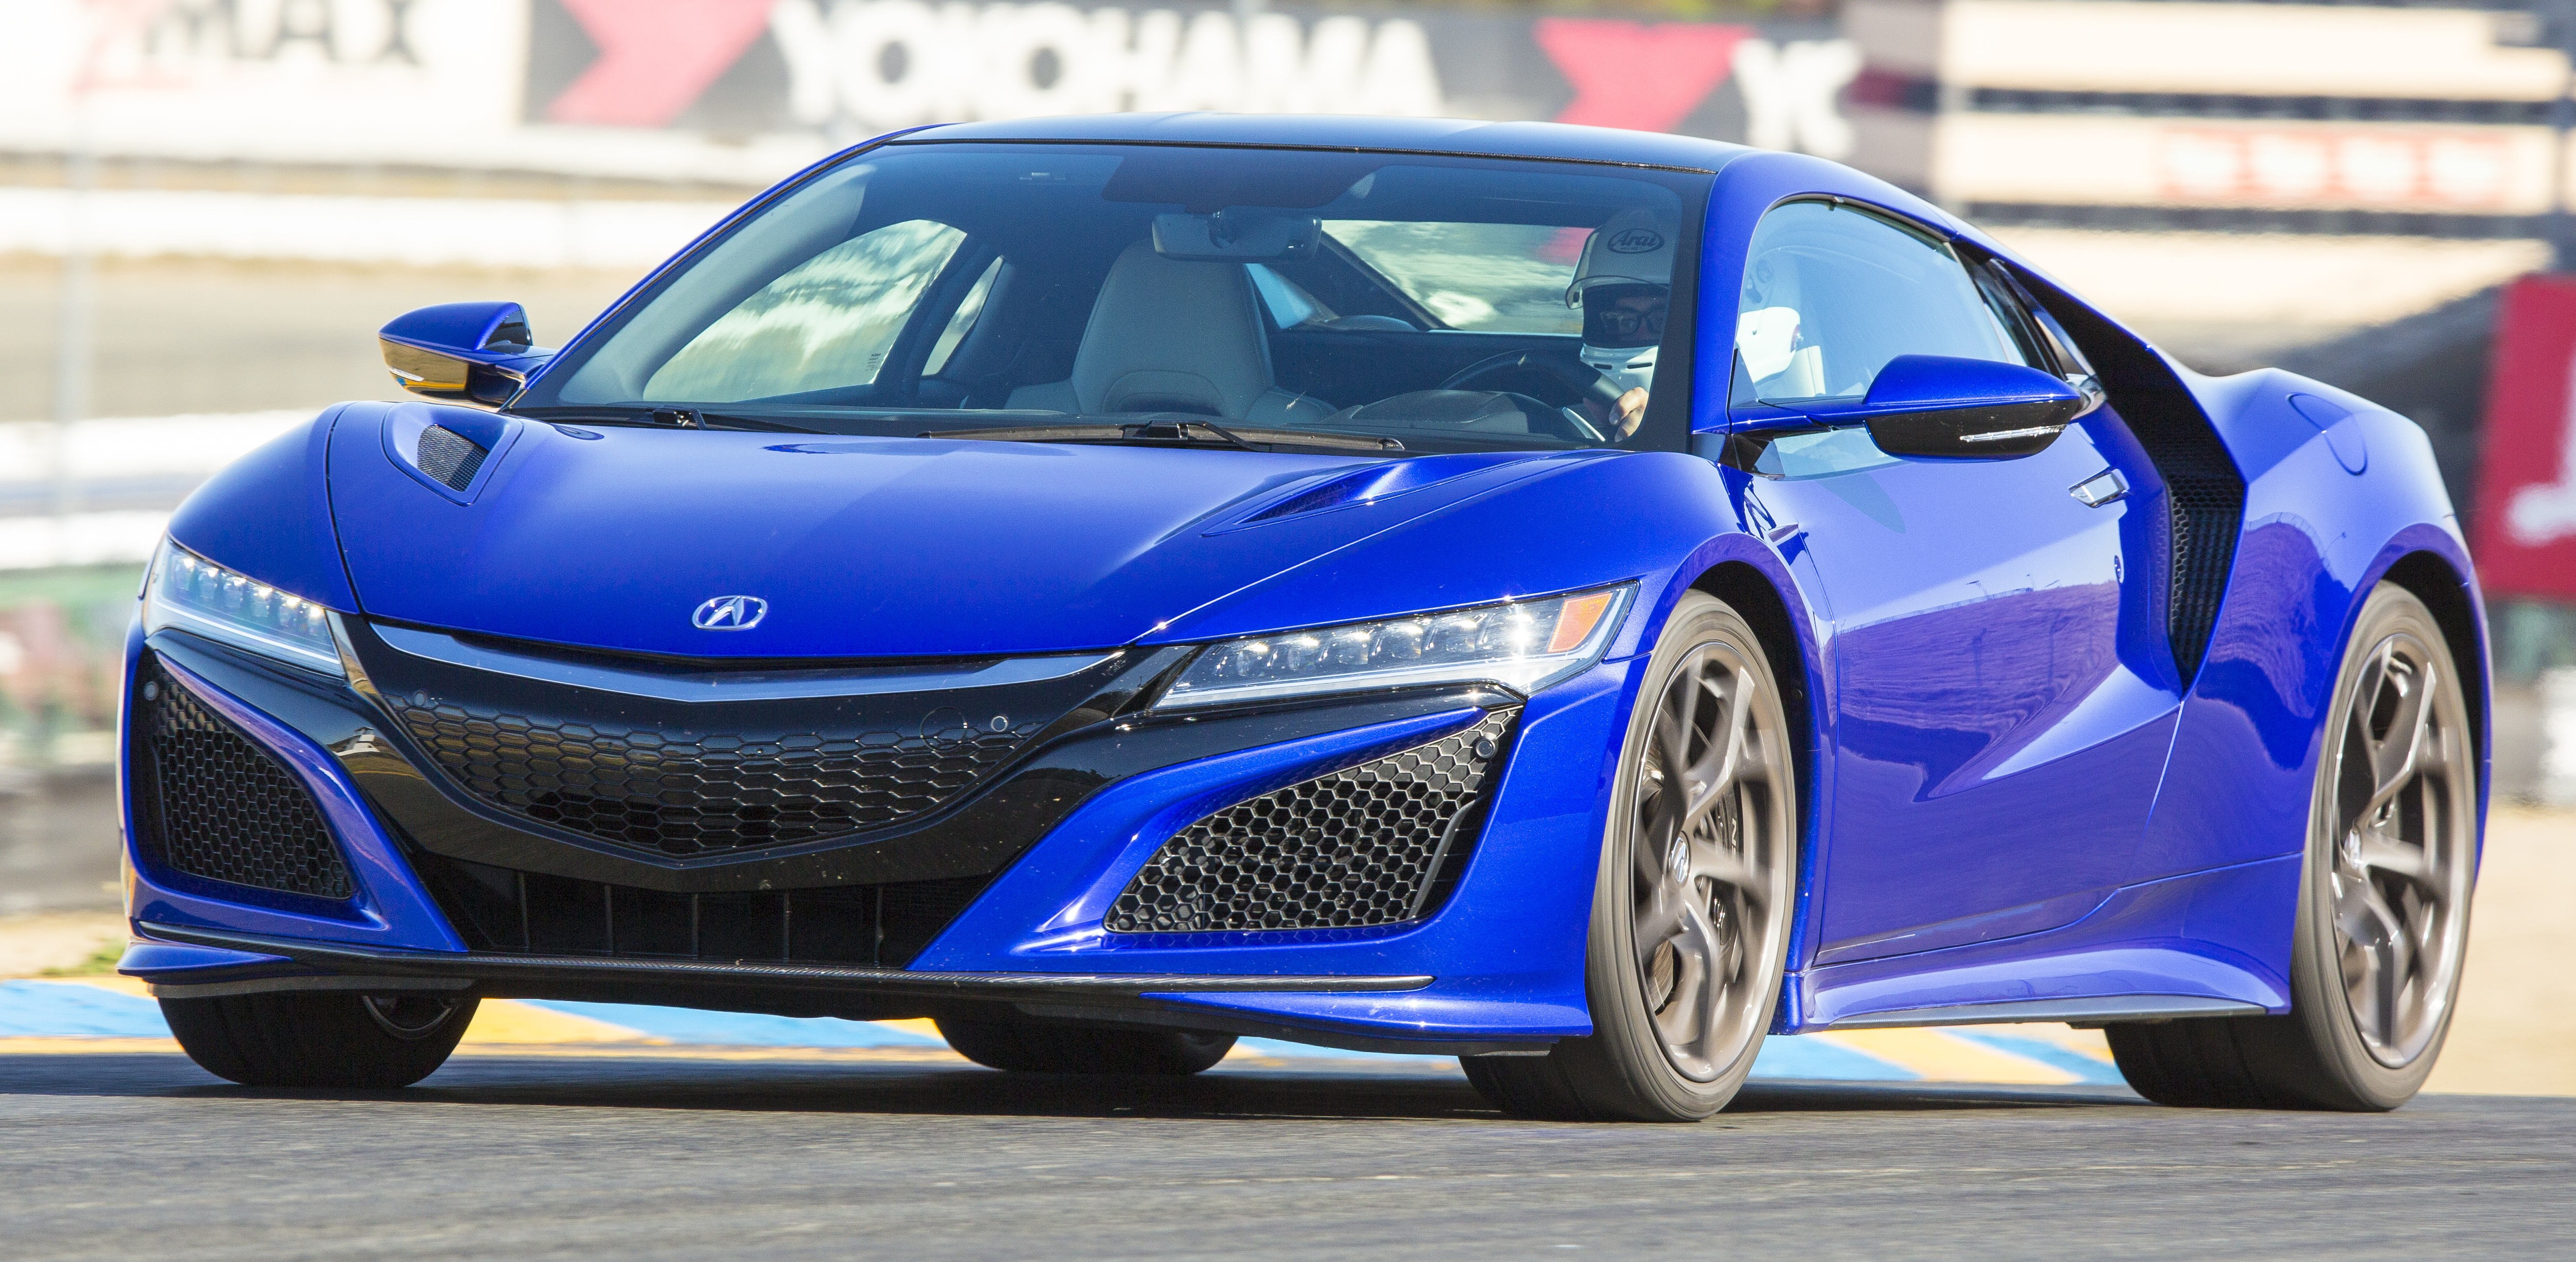 Honda NSX Type R, cabriolet, all-electric variants possible